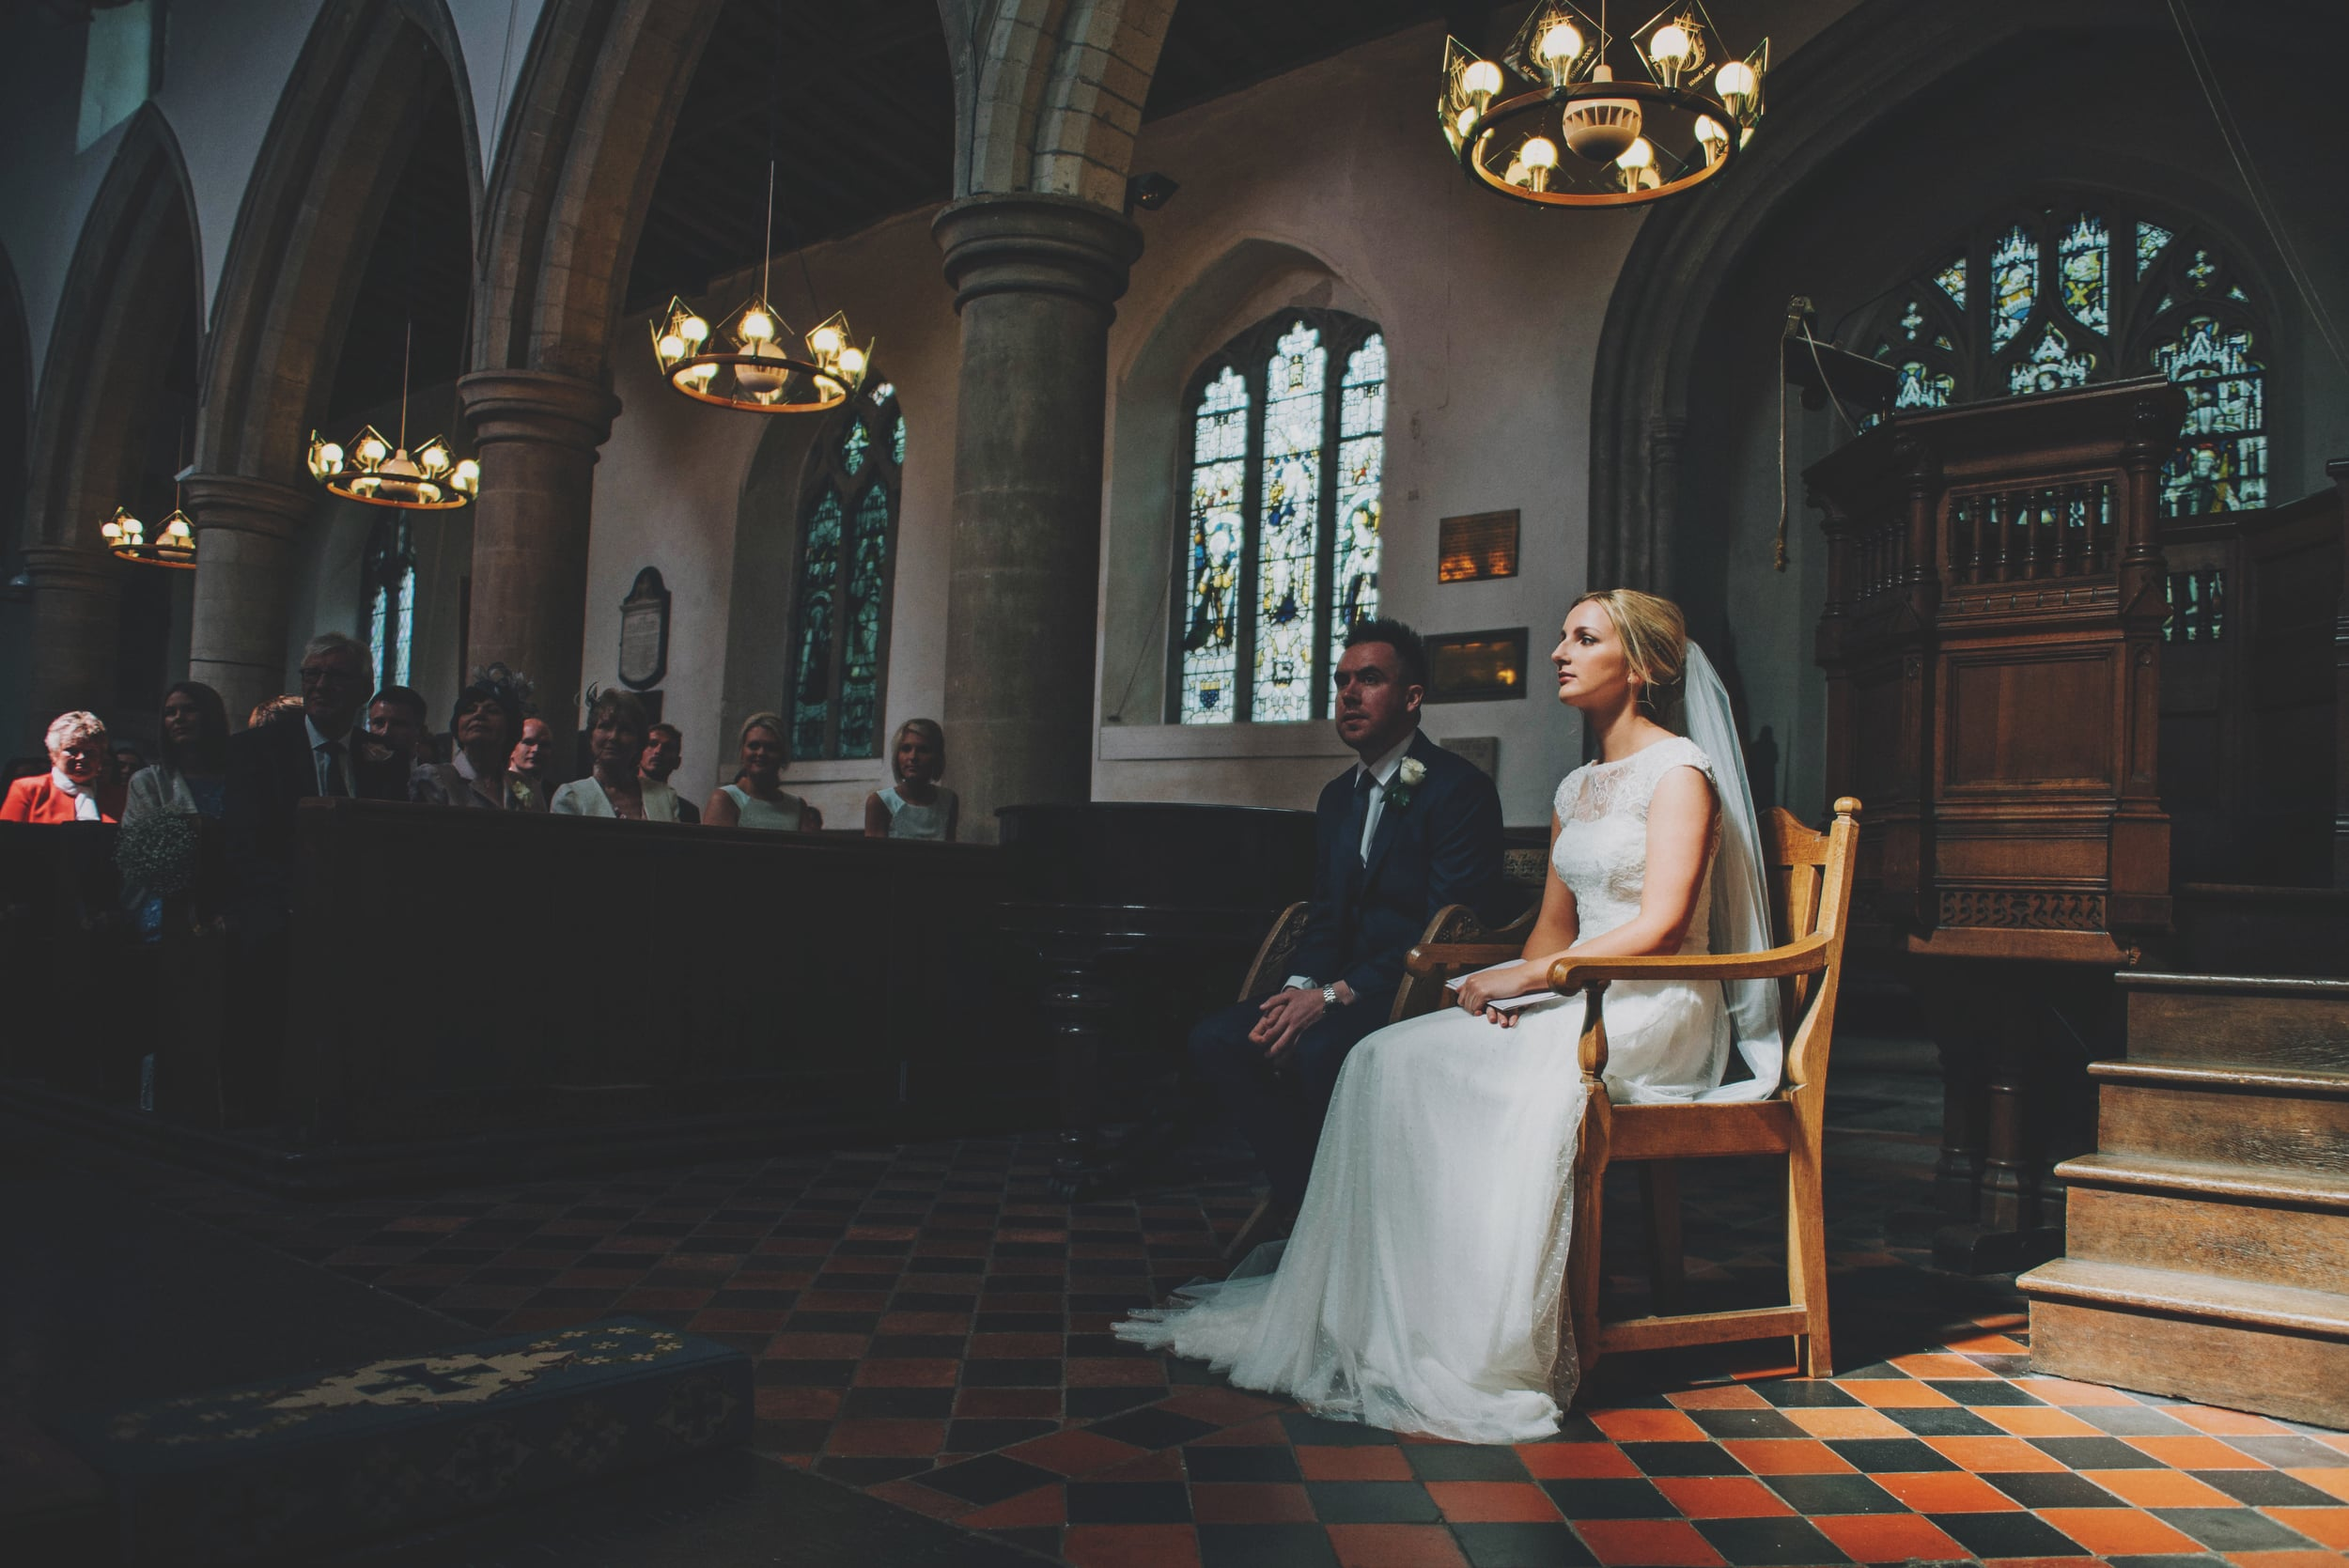 Bride and Groom in church for Rustic Blake Hall Barn Wedding Essex UK Documentary Wedding Photographer